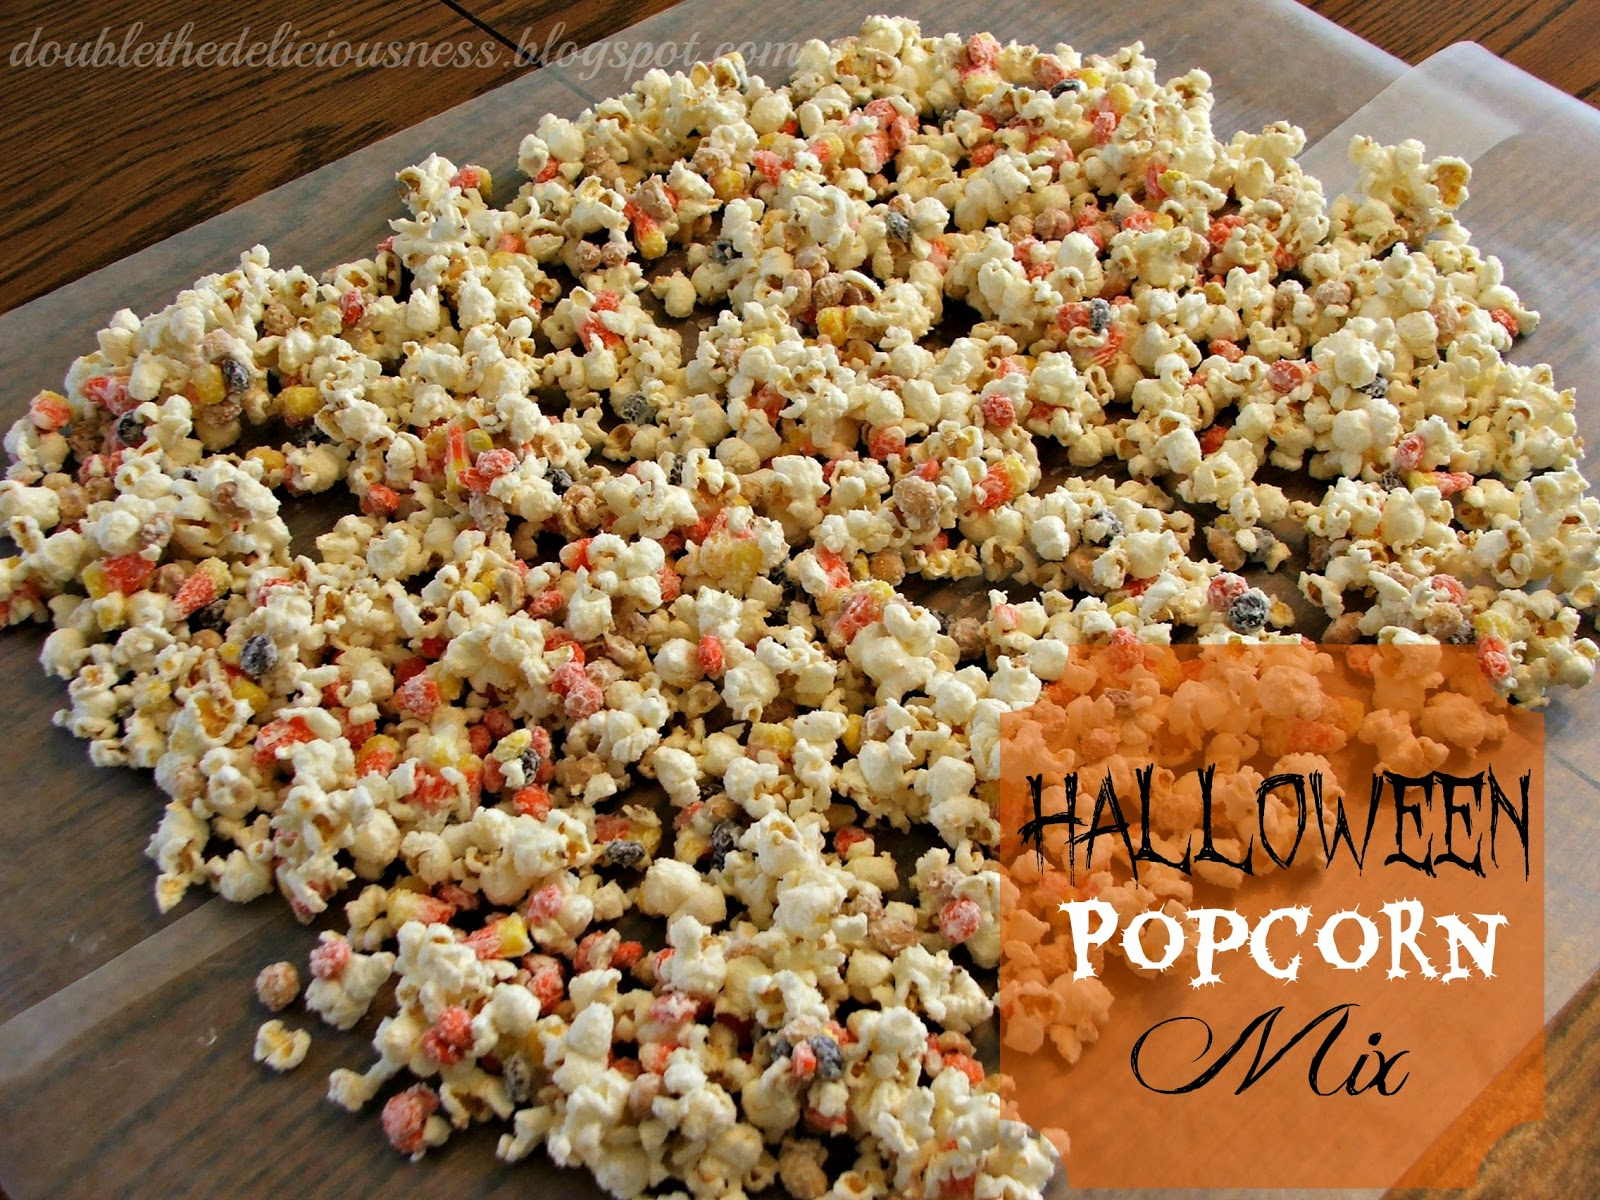 Candy Coated Party Popcorn Mixed With Favorite Halloween ...